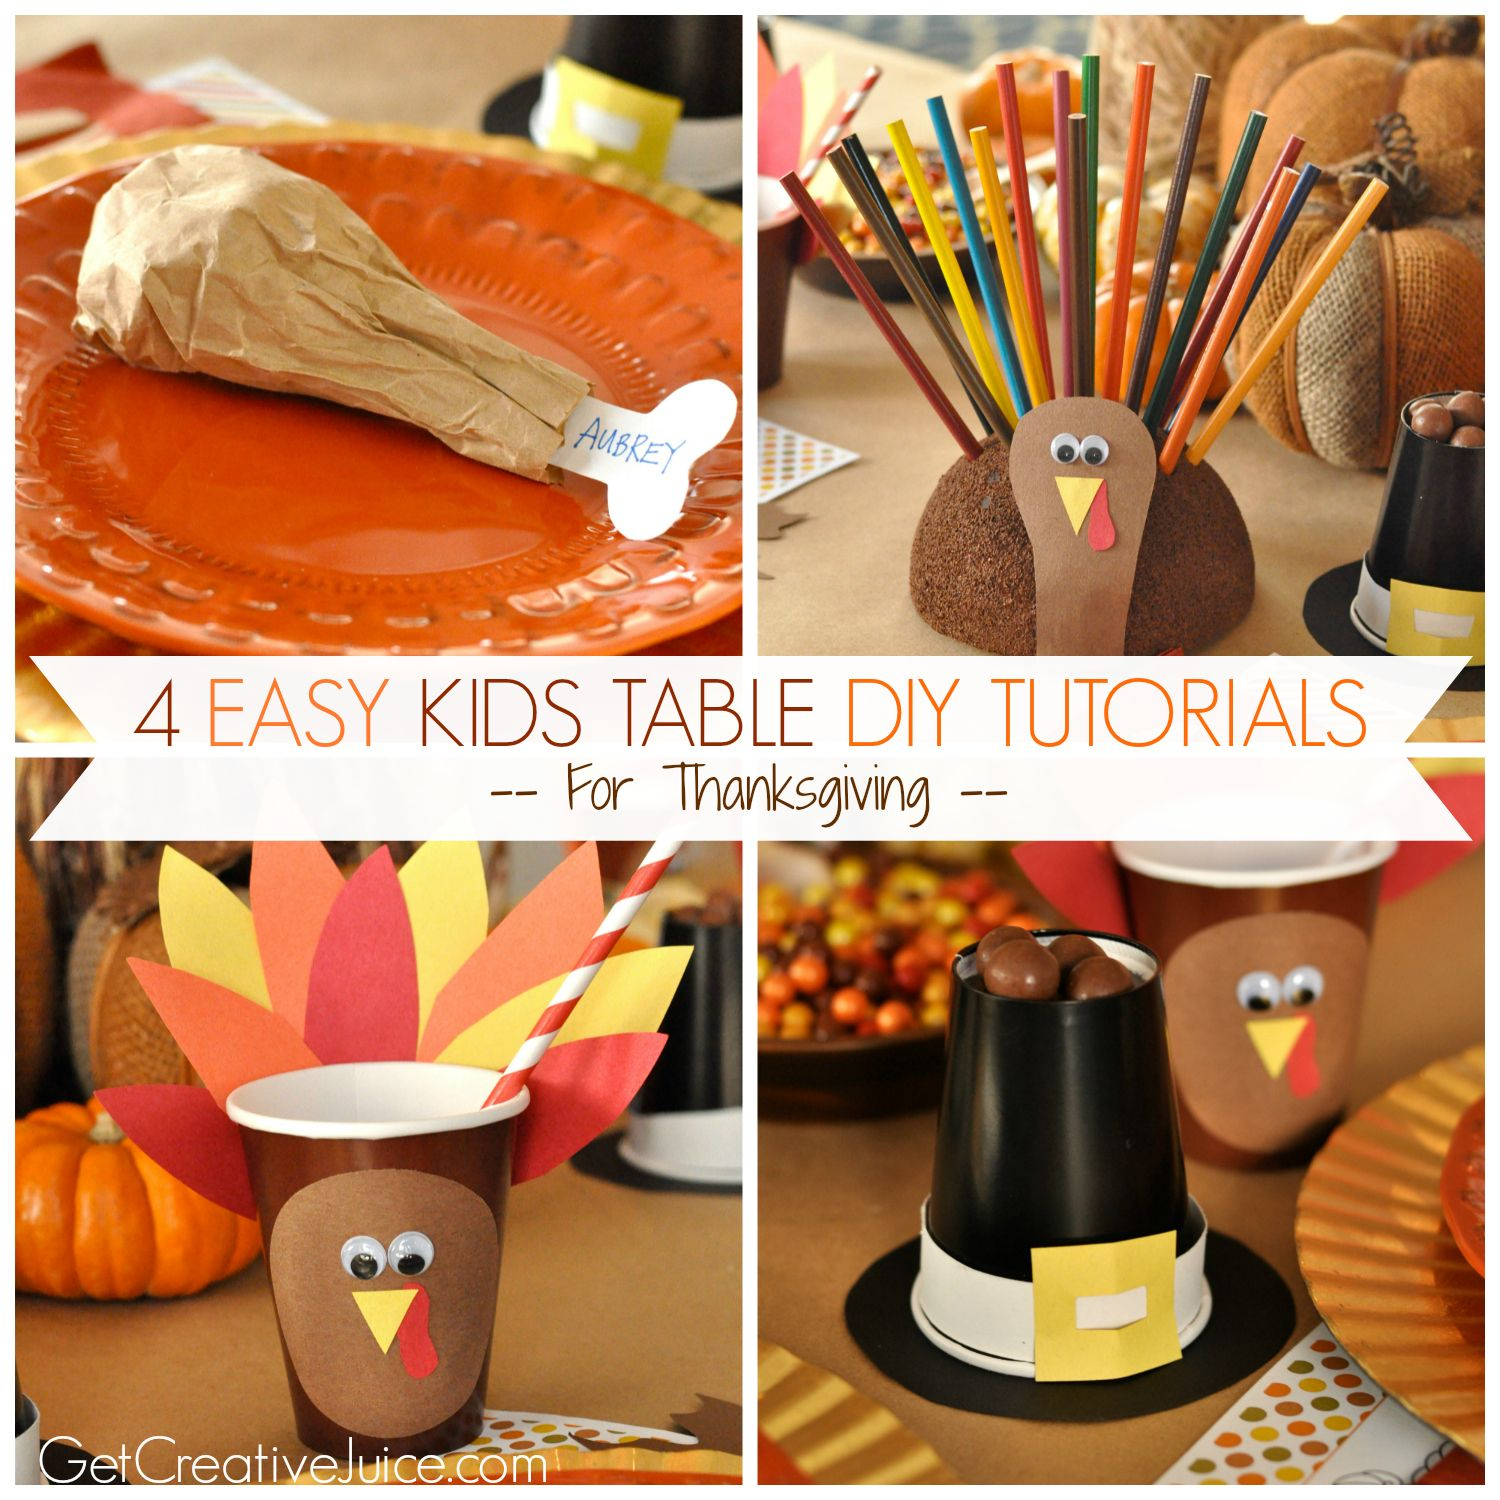 Easy Fun And Cute Kids Thanksgiving Table Craft Tutorials